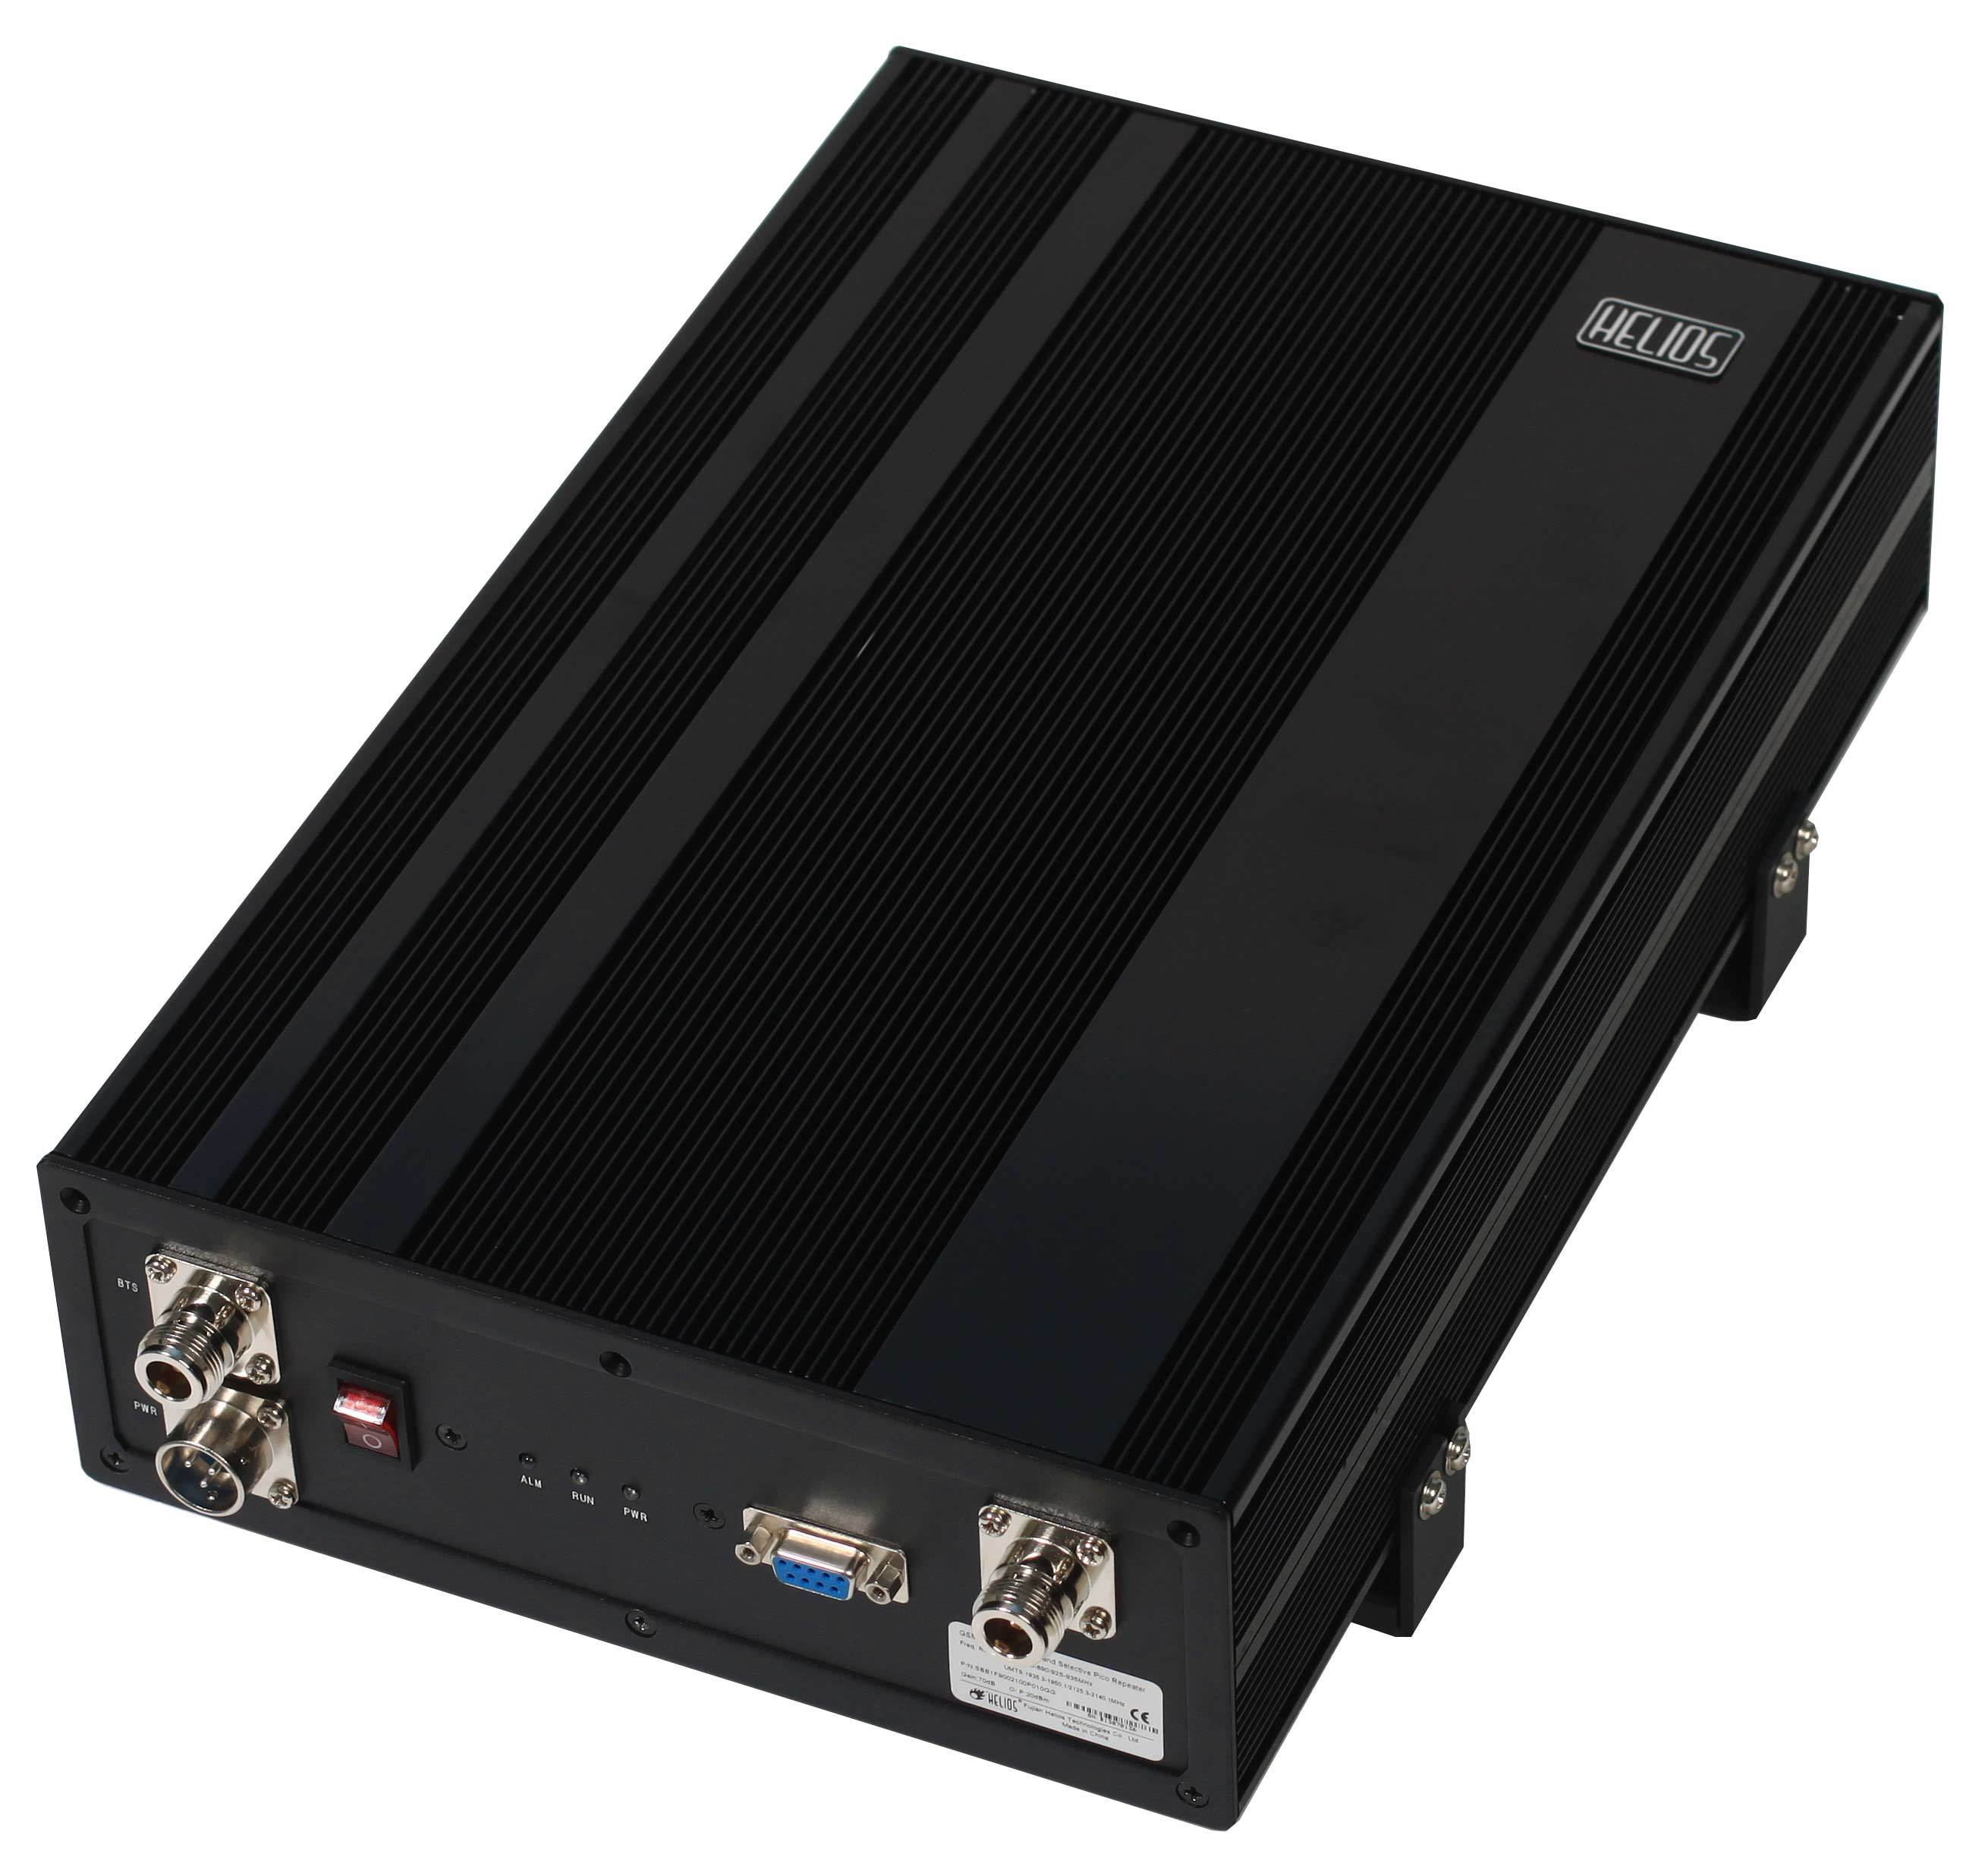 20dBm 70dB Digital Tri-Band Indoor Pico Repeater